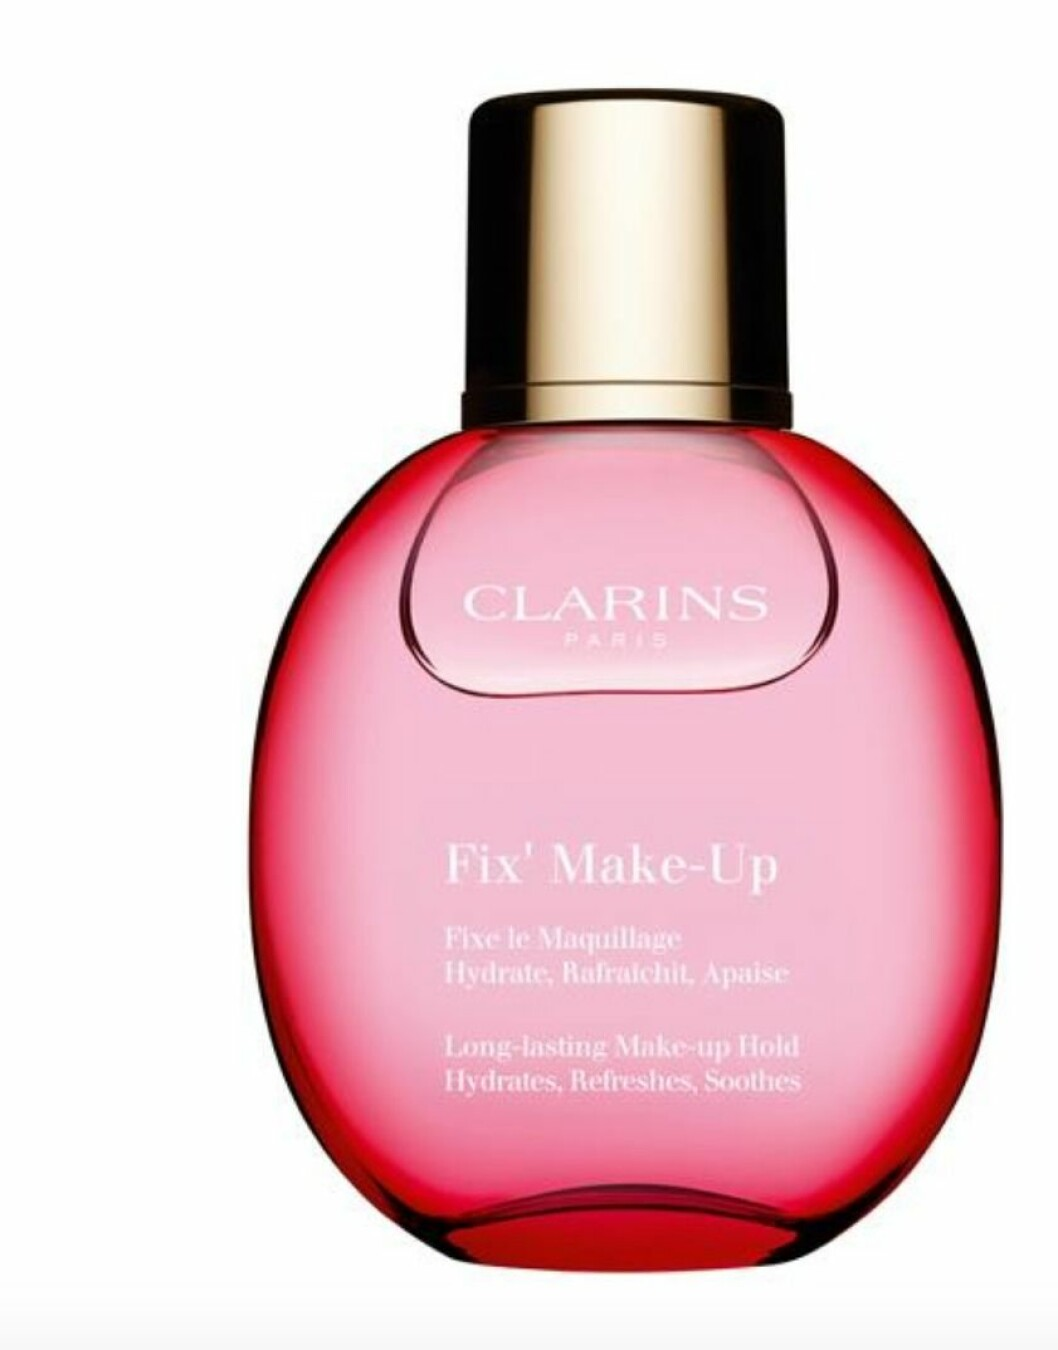 Fix´ Make-Up från Clarins